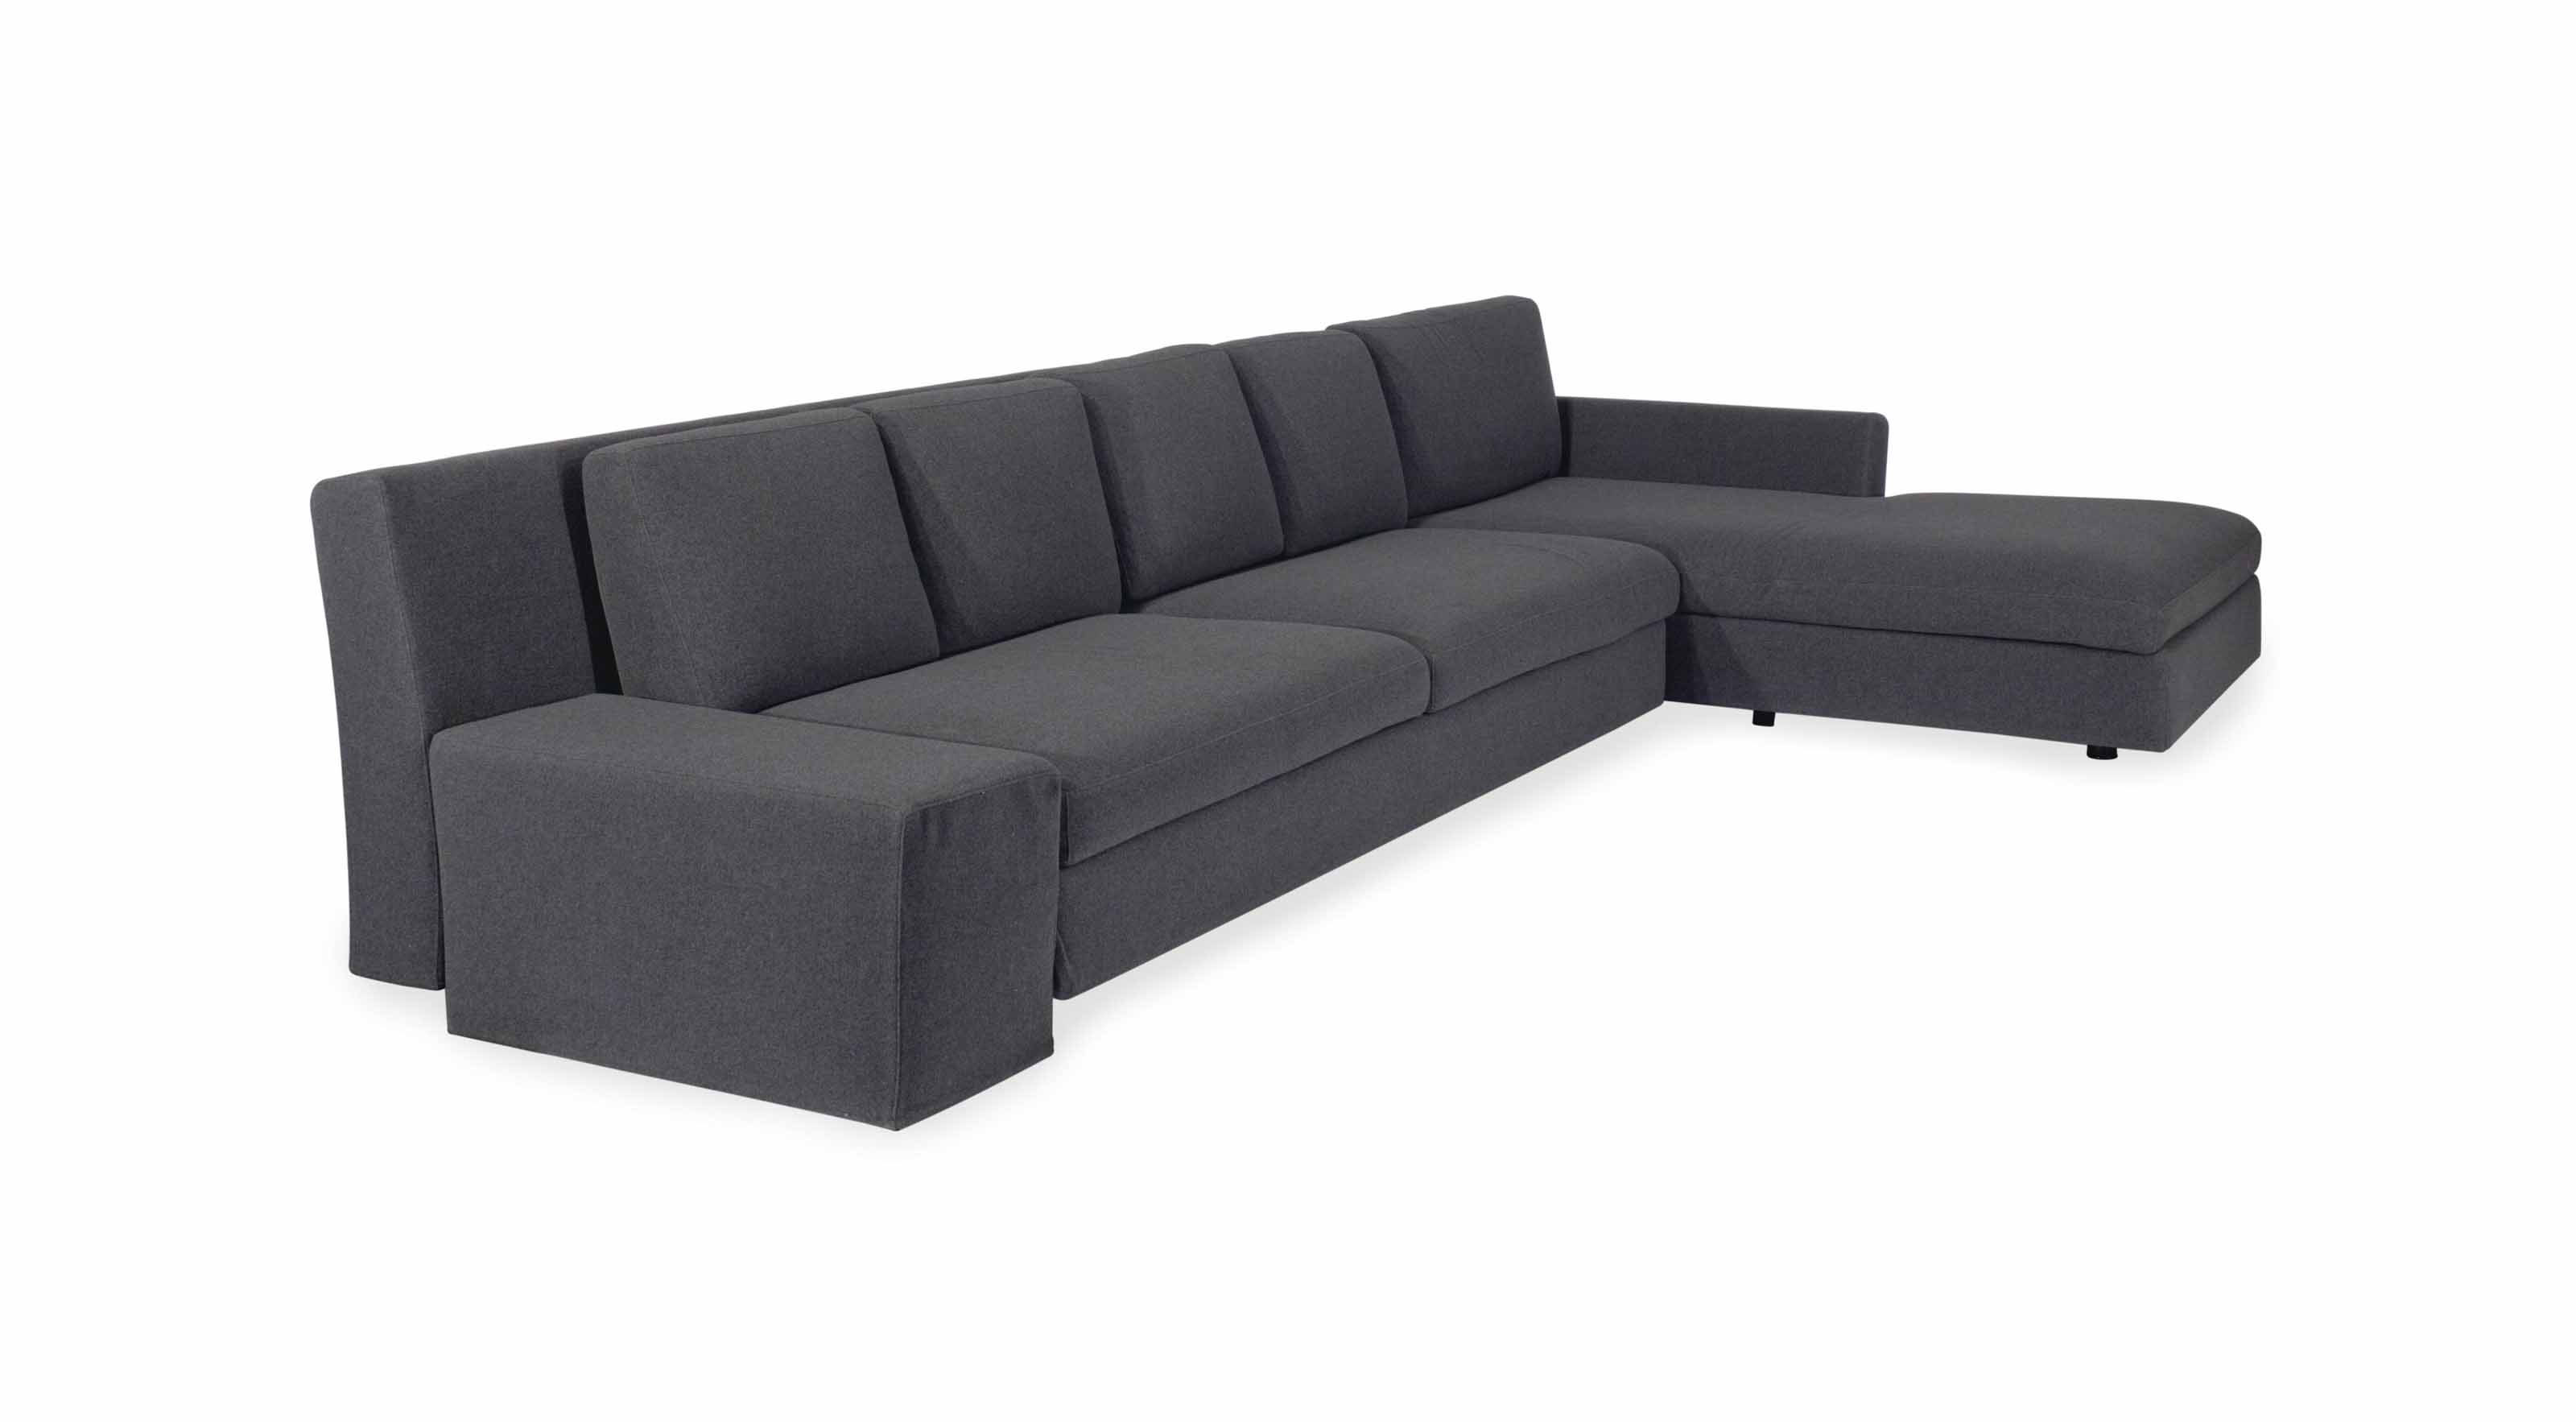 A GREY-UPHOLSTERED SECTIONAL S